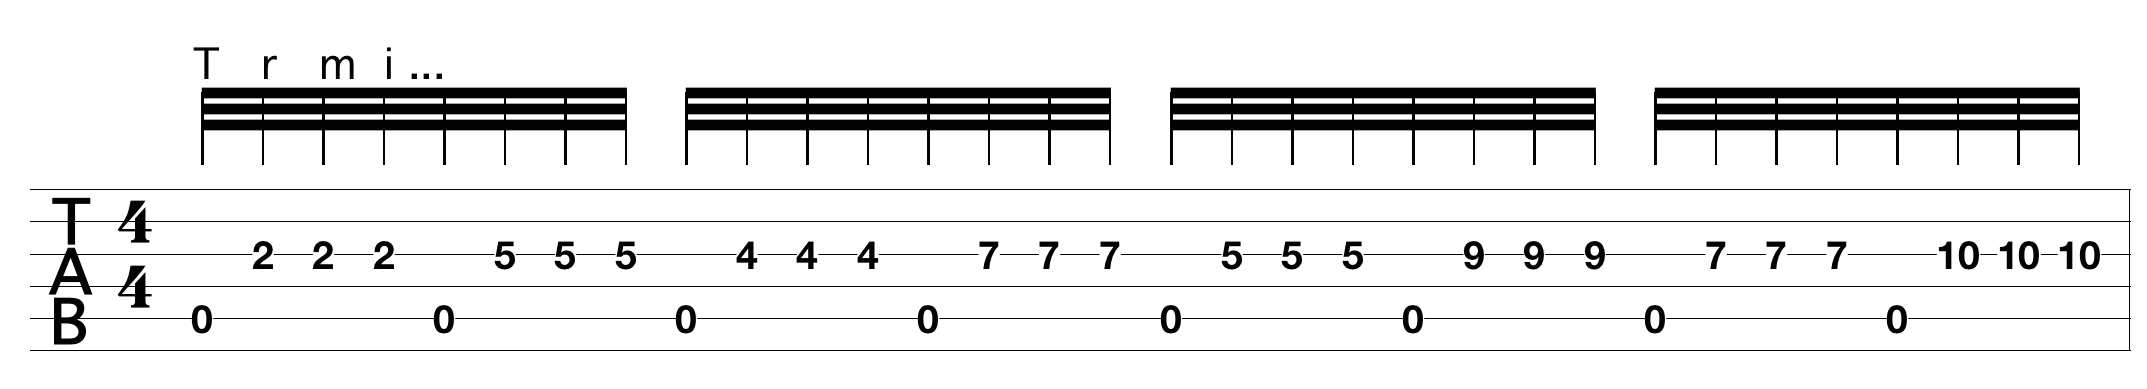 classical-guitar-practice-routine_1.png